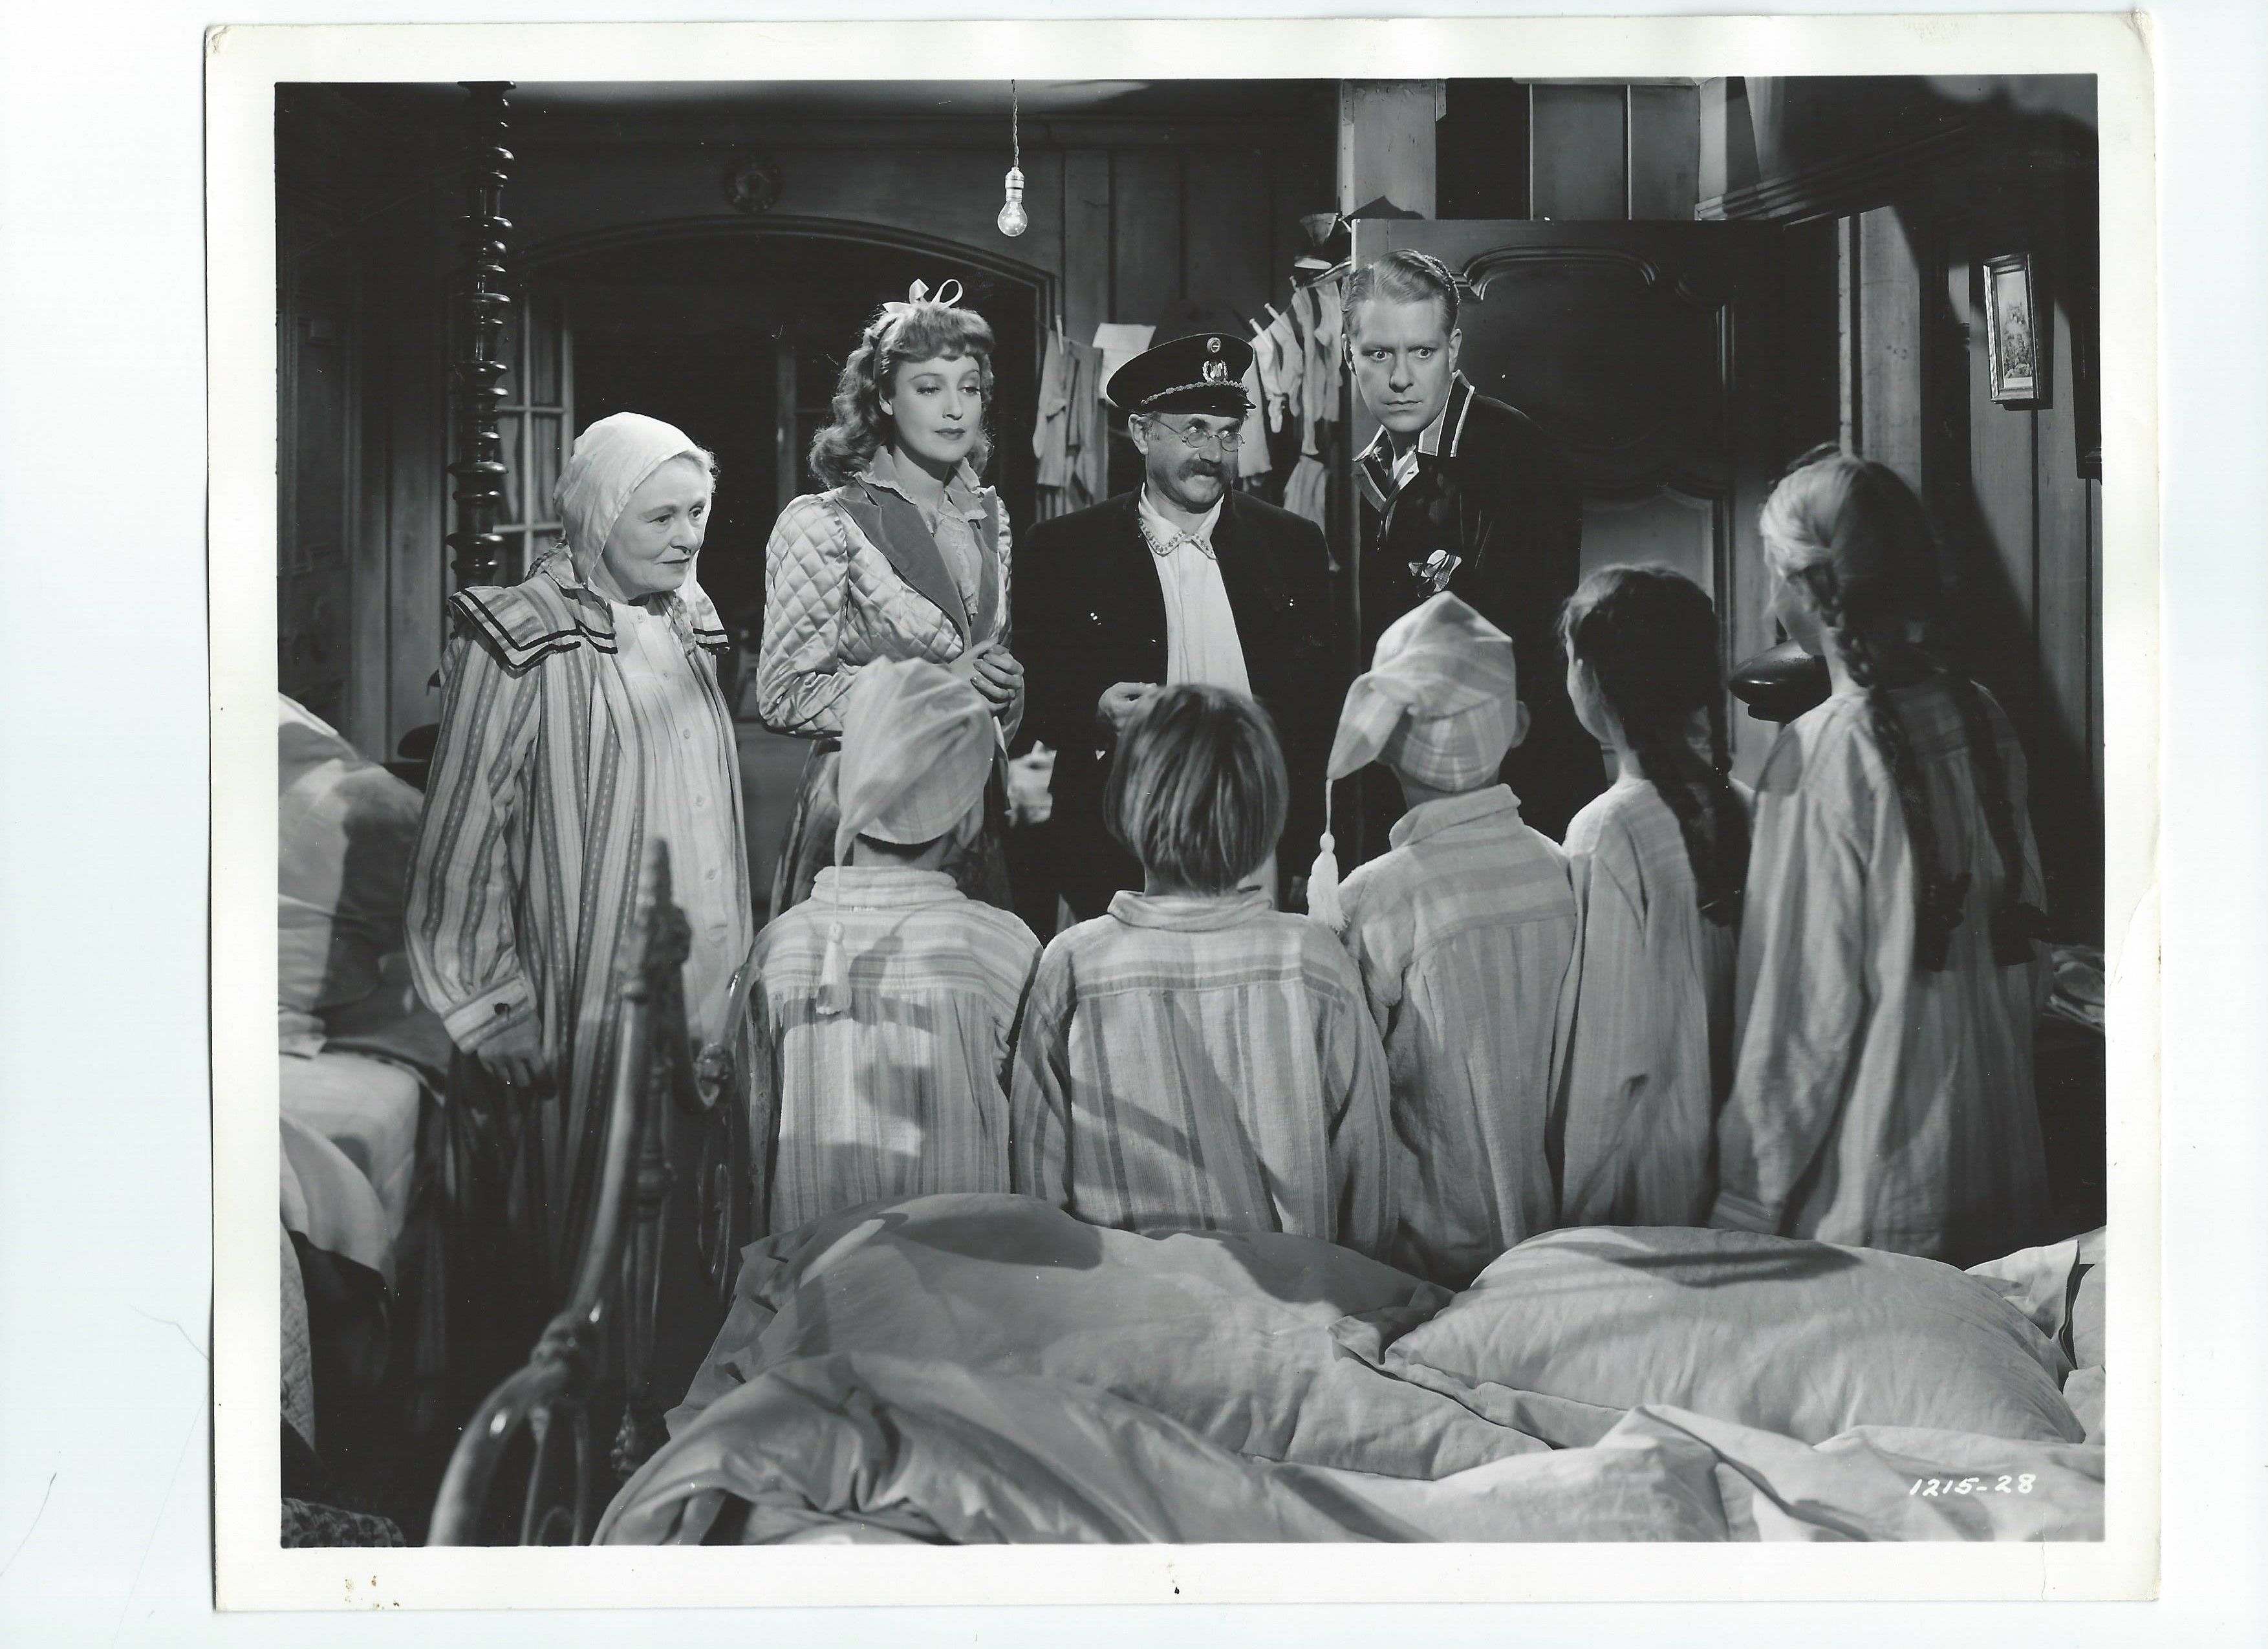 Double Weight Original Vintage Photo Of A Deleted Scene From I Married An Angel With Jeanette Macdonald And Nelson Eddy E Jeanette Macdonald Jeanette Photo